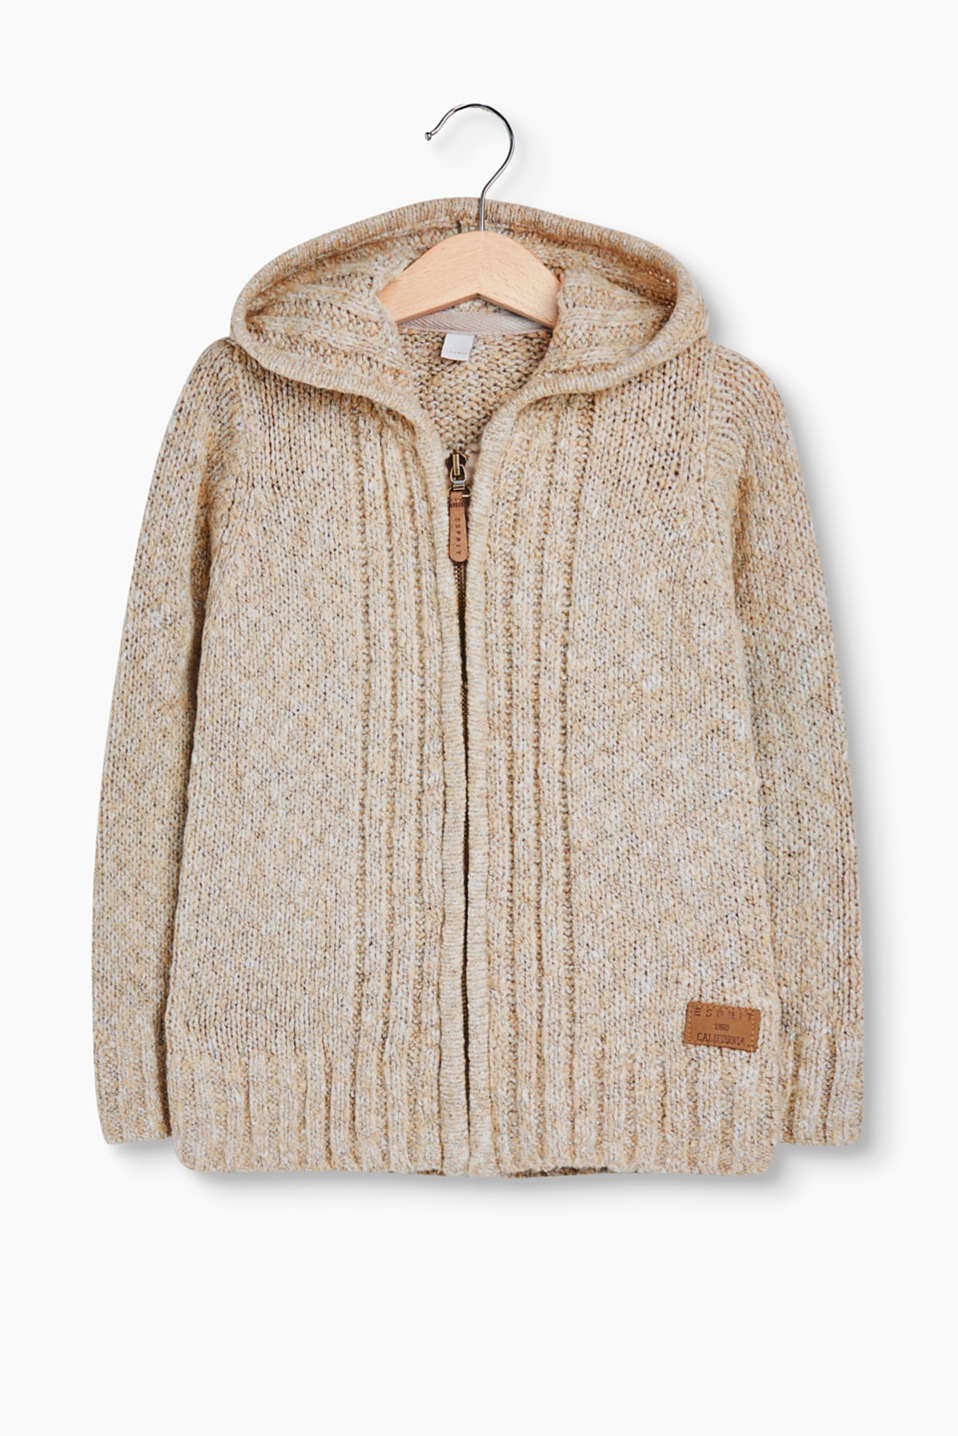 Soft, cuddly fave: melange knitted cardigan with a hood and faux leather elbow patches.